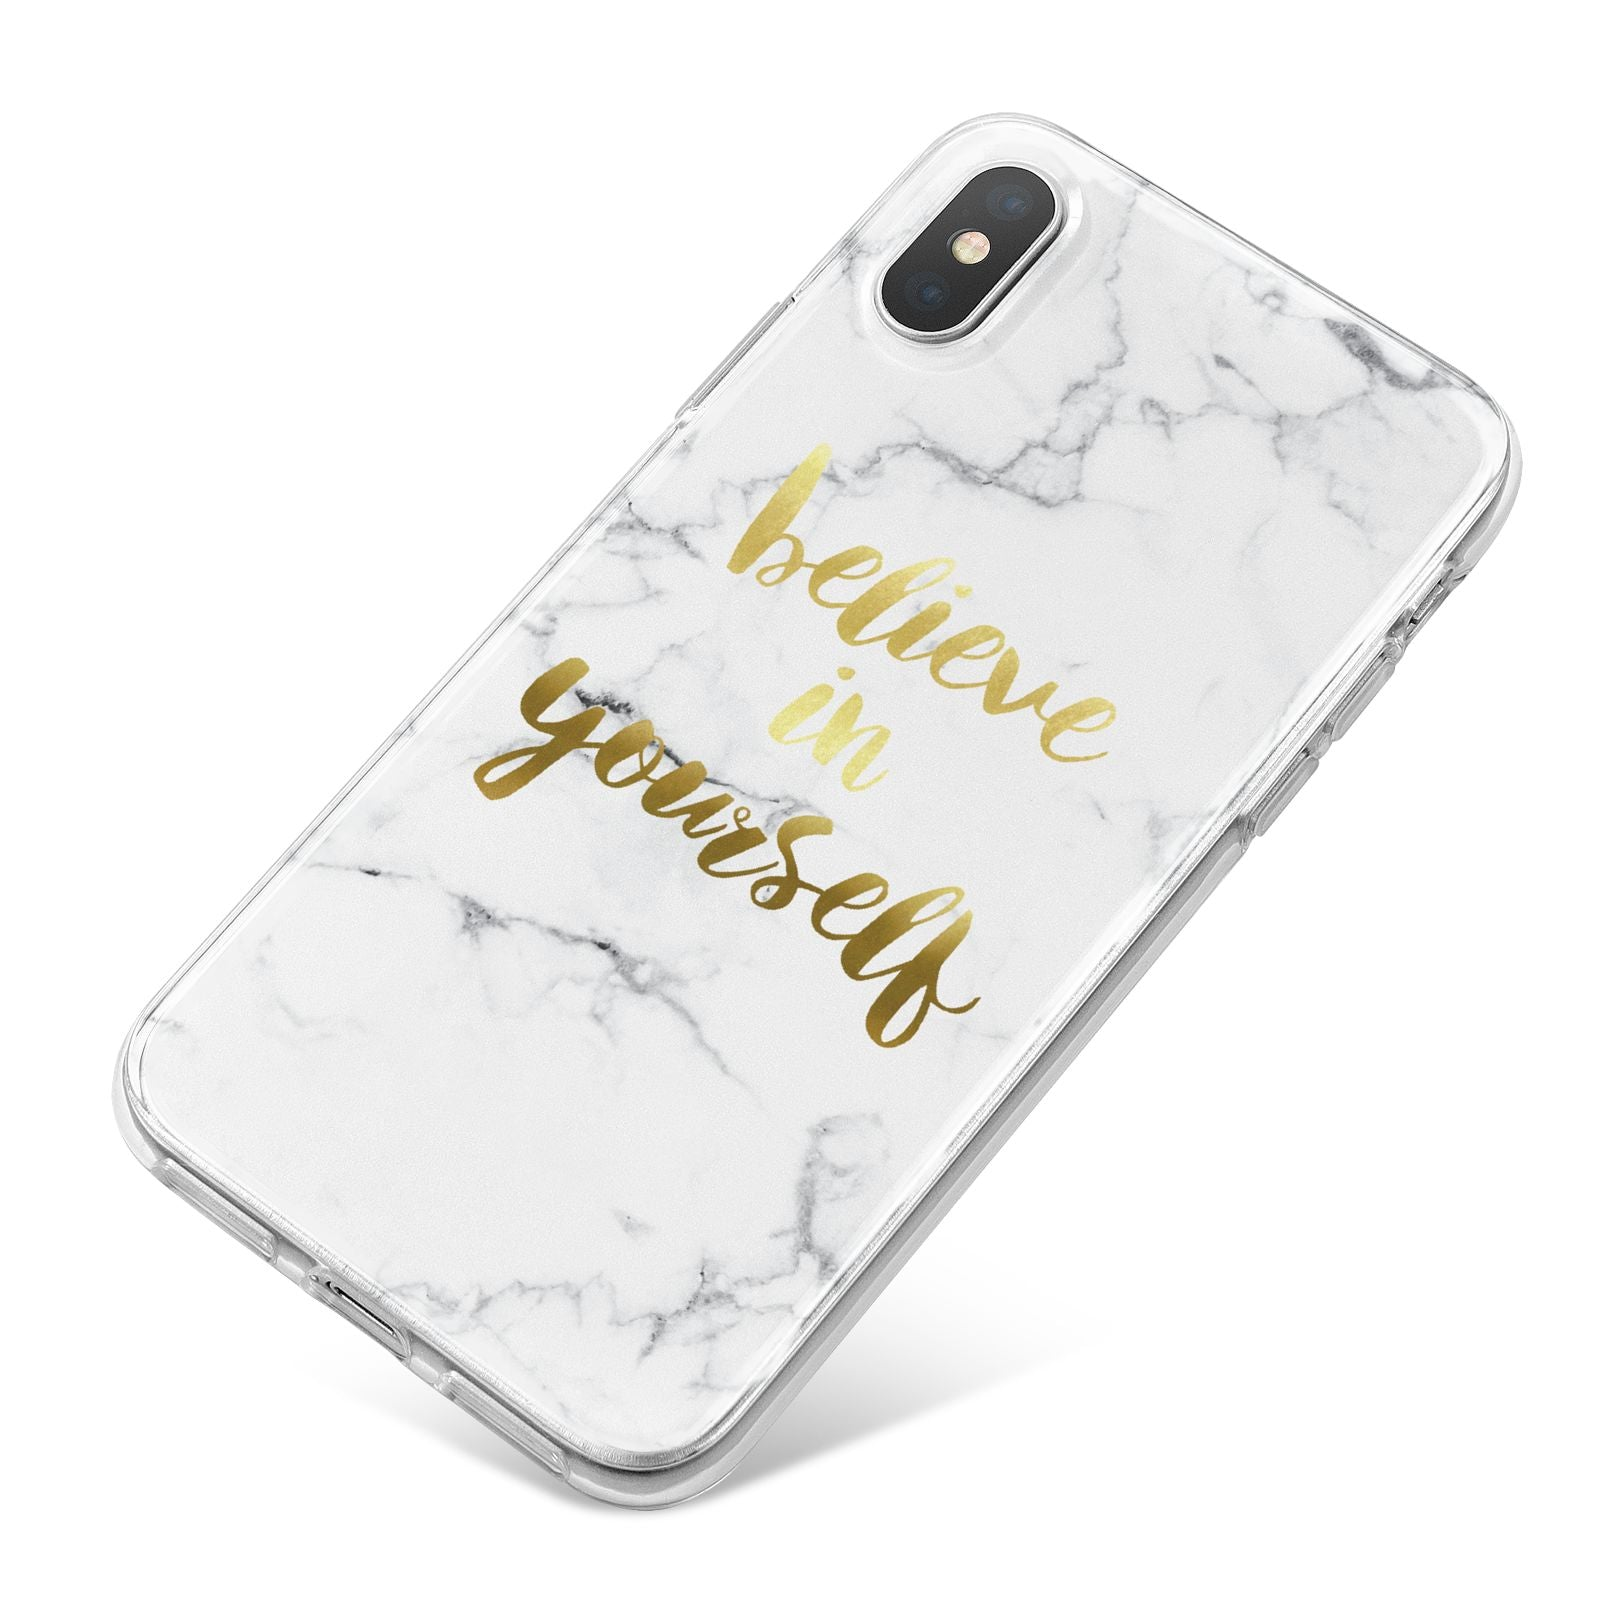 Believe In Yourself Gold Marble iPhone X Bumper Case on Silver iPhone